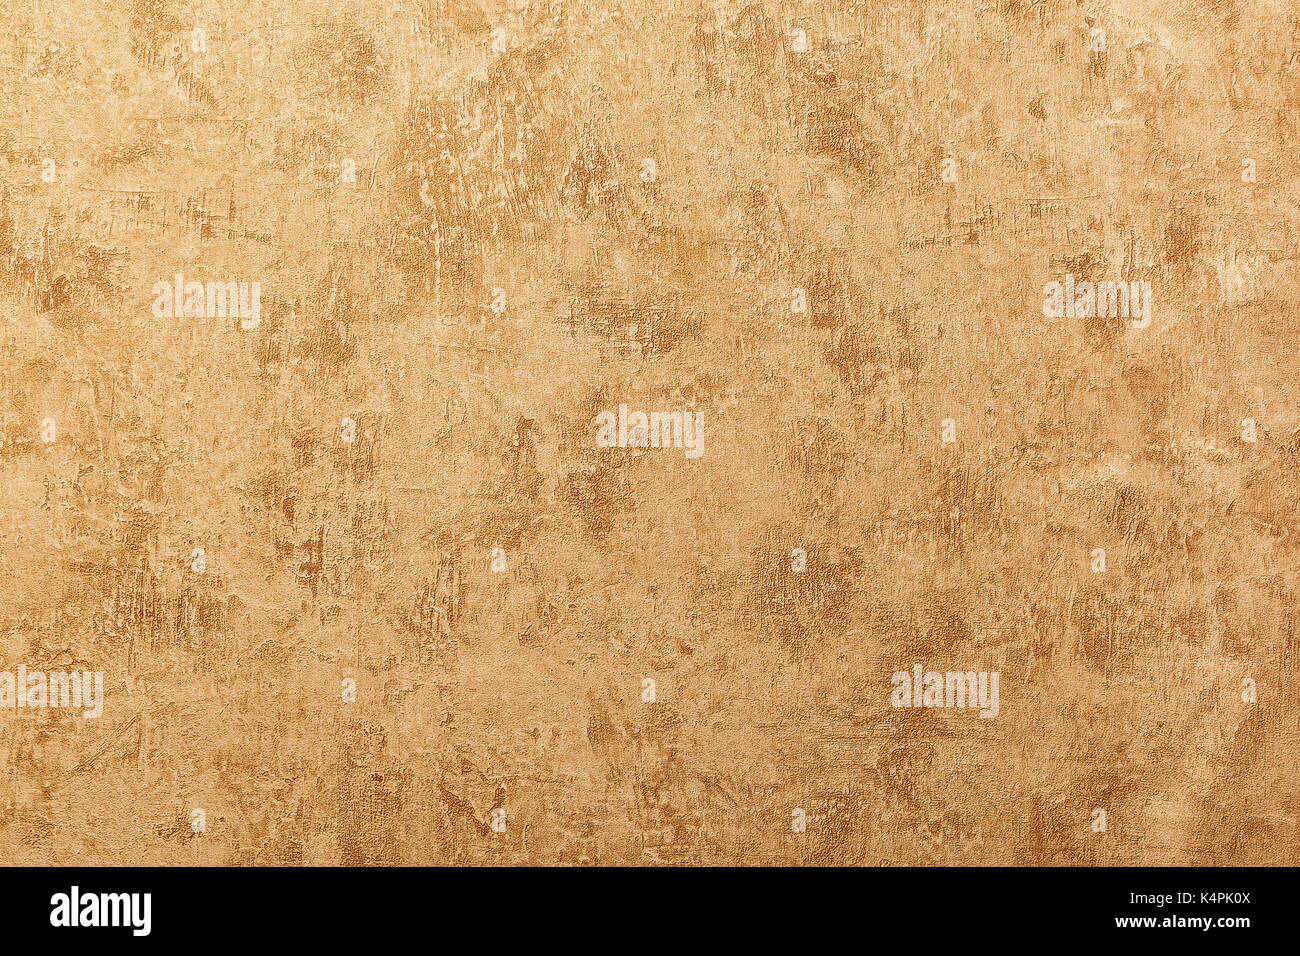 Embossed embossed structure of a decorative background in beige tones - Stock Image